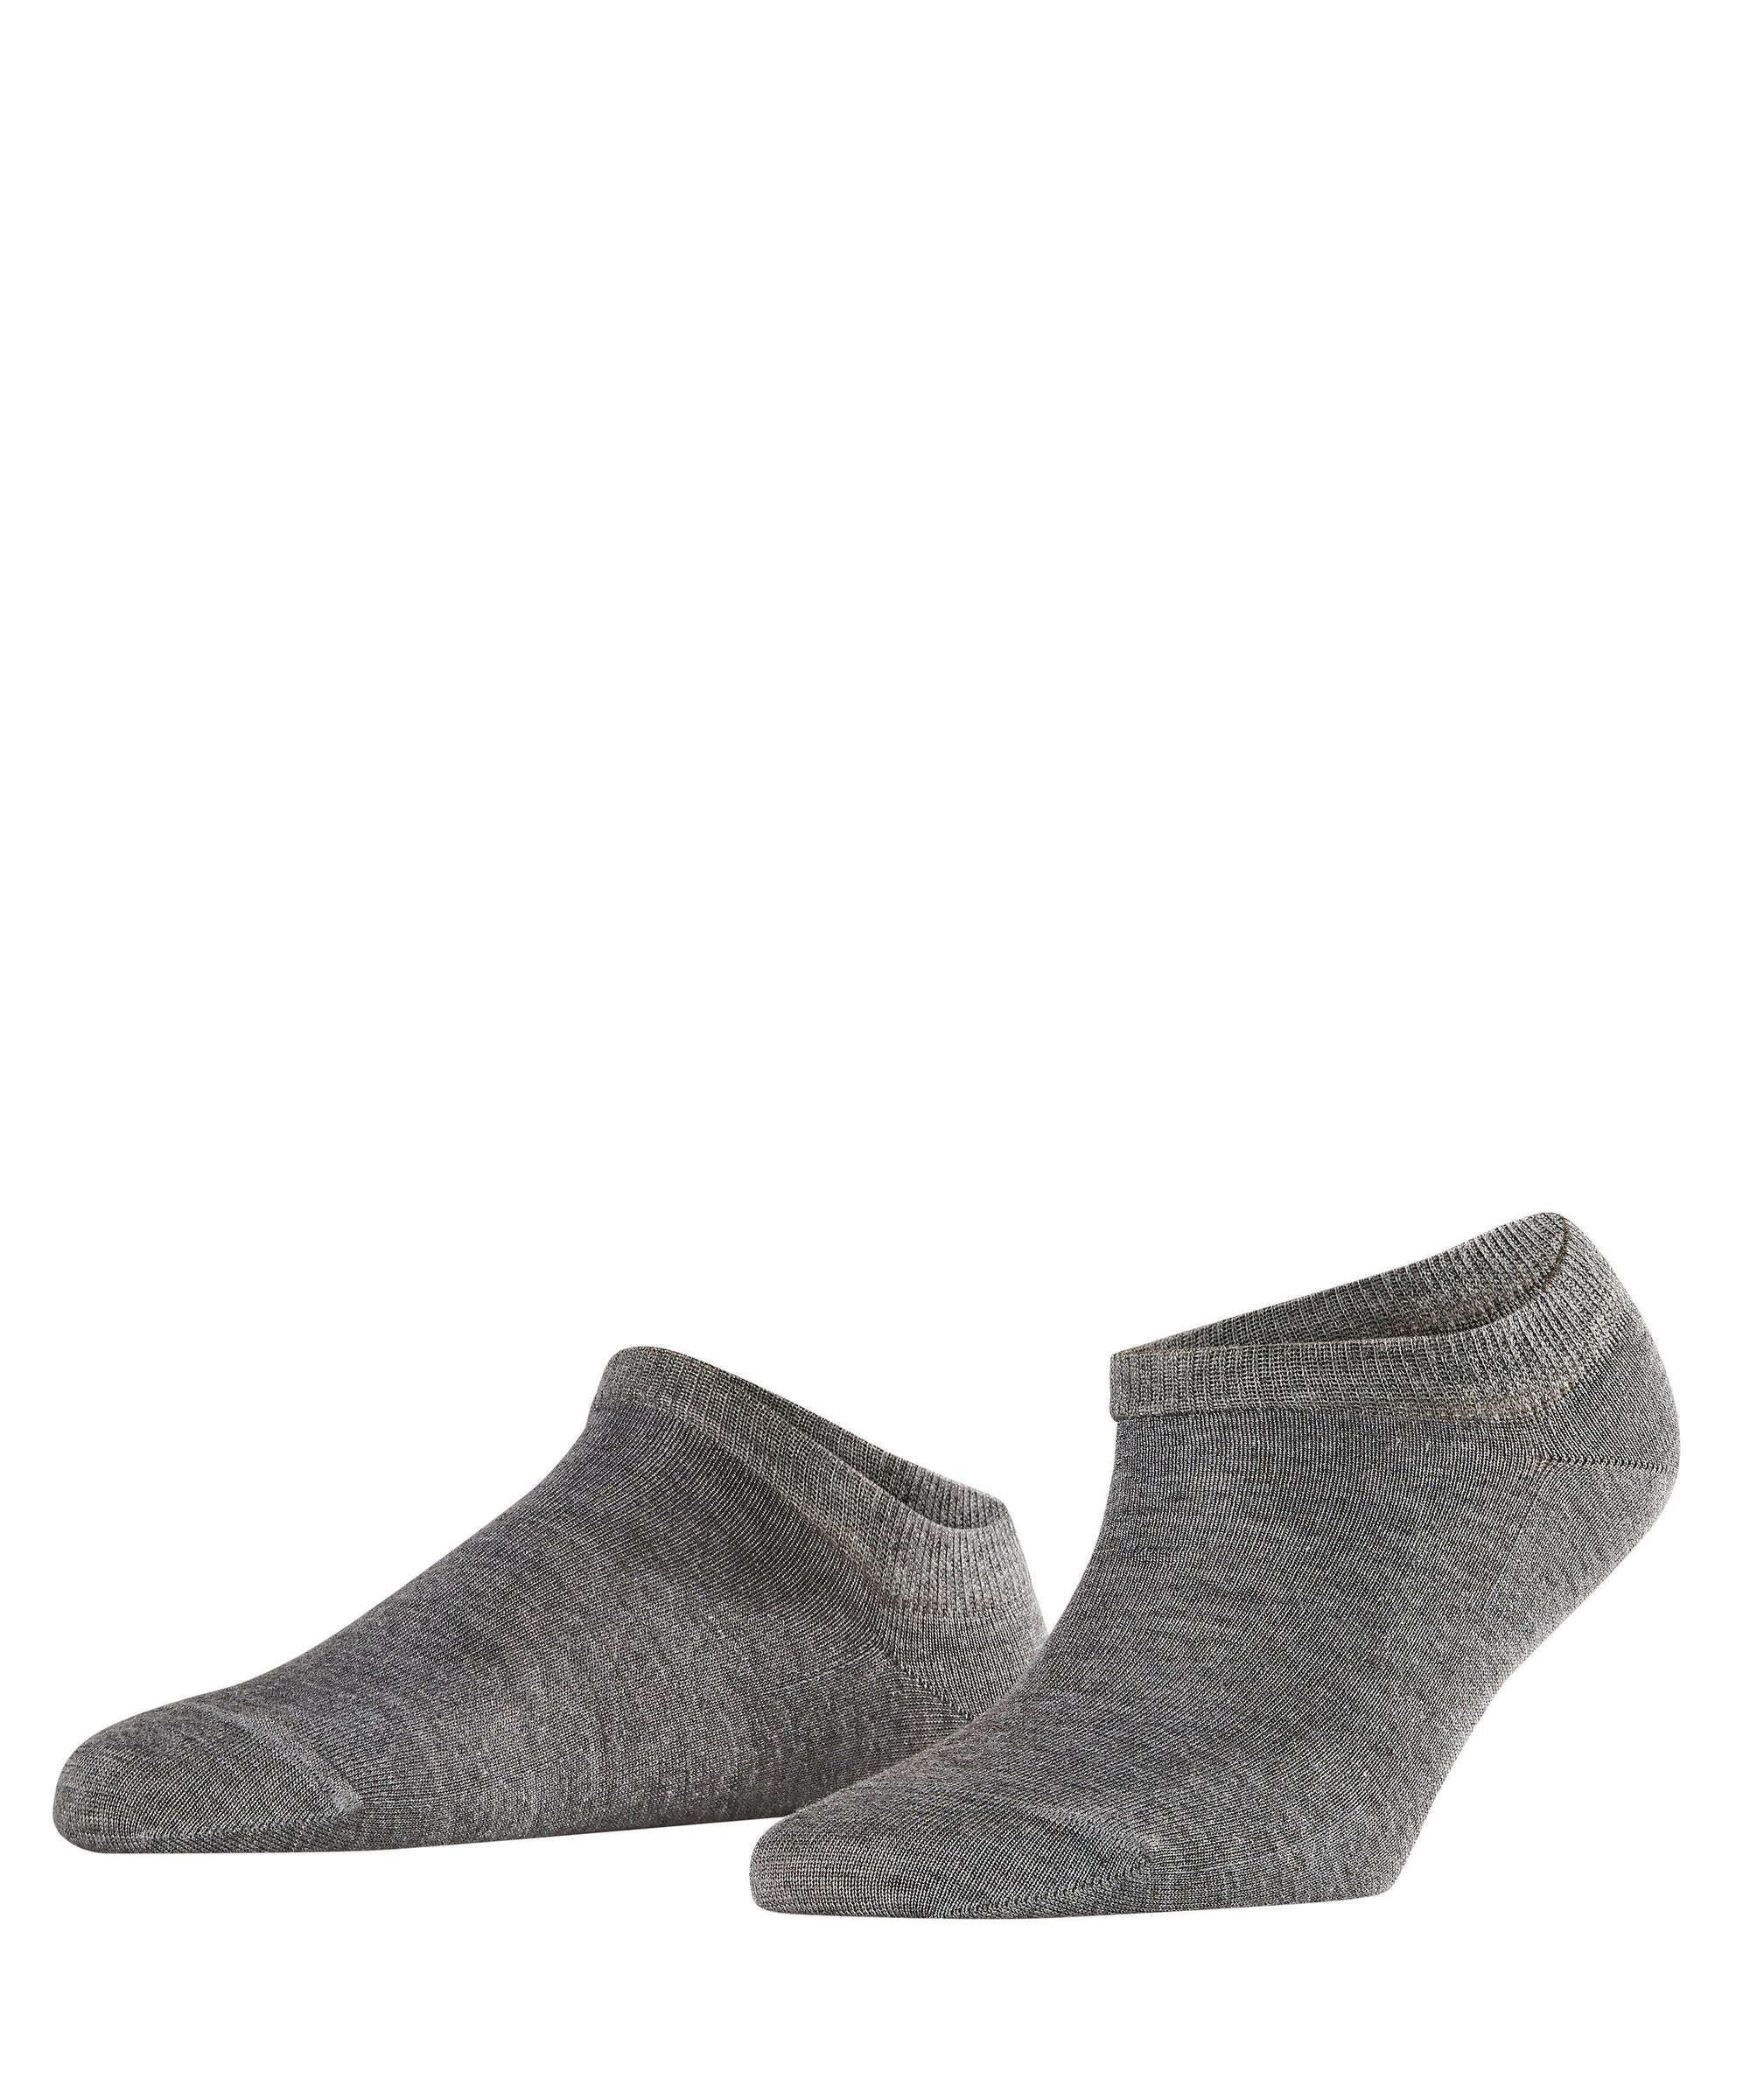 Falke Active Breeze Sneaker Socks Grey